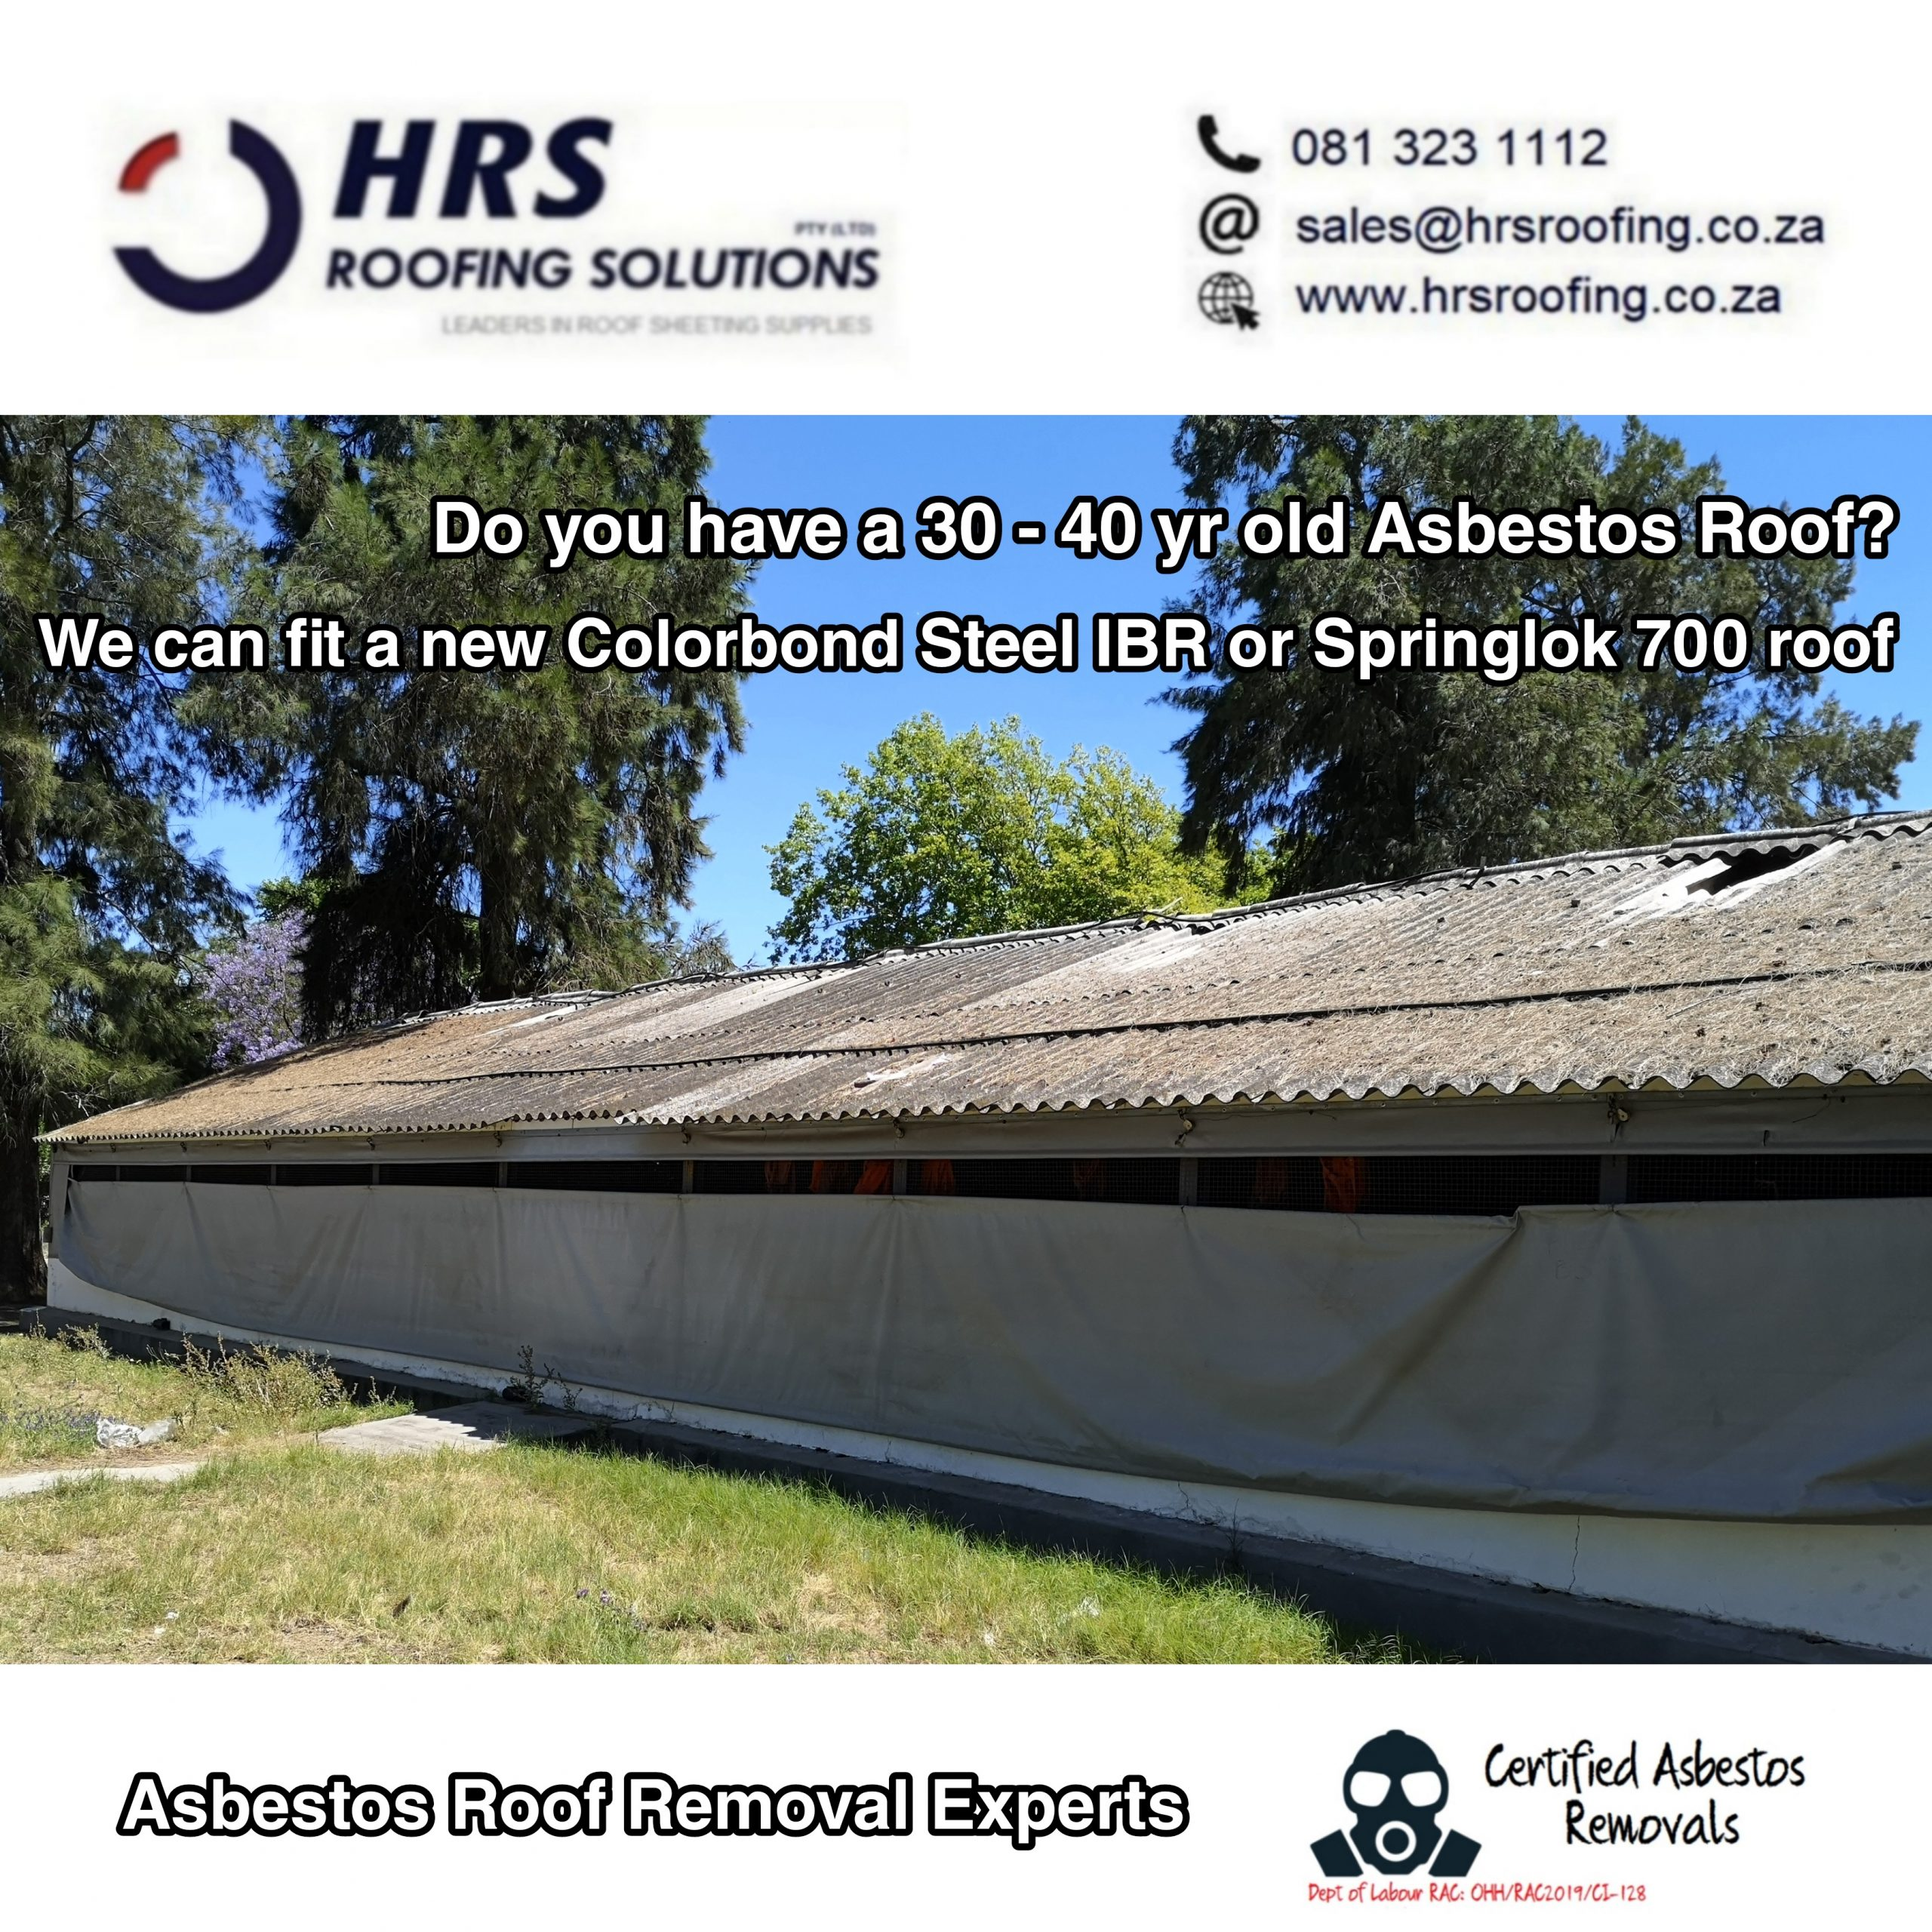 Asbestos roof Removal Cape Town Stellenbosch table view parow Asbestos dumping scaled - Roofing Gallery